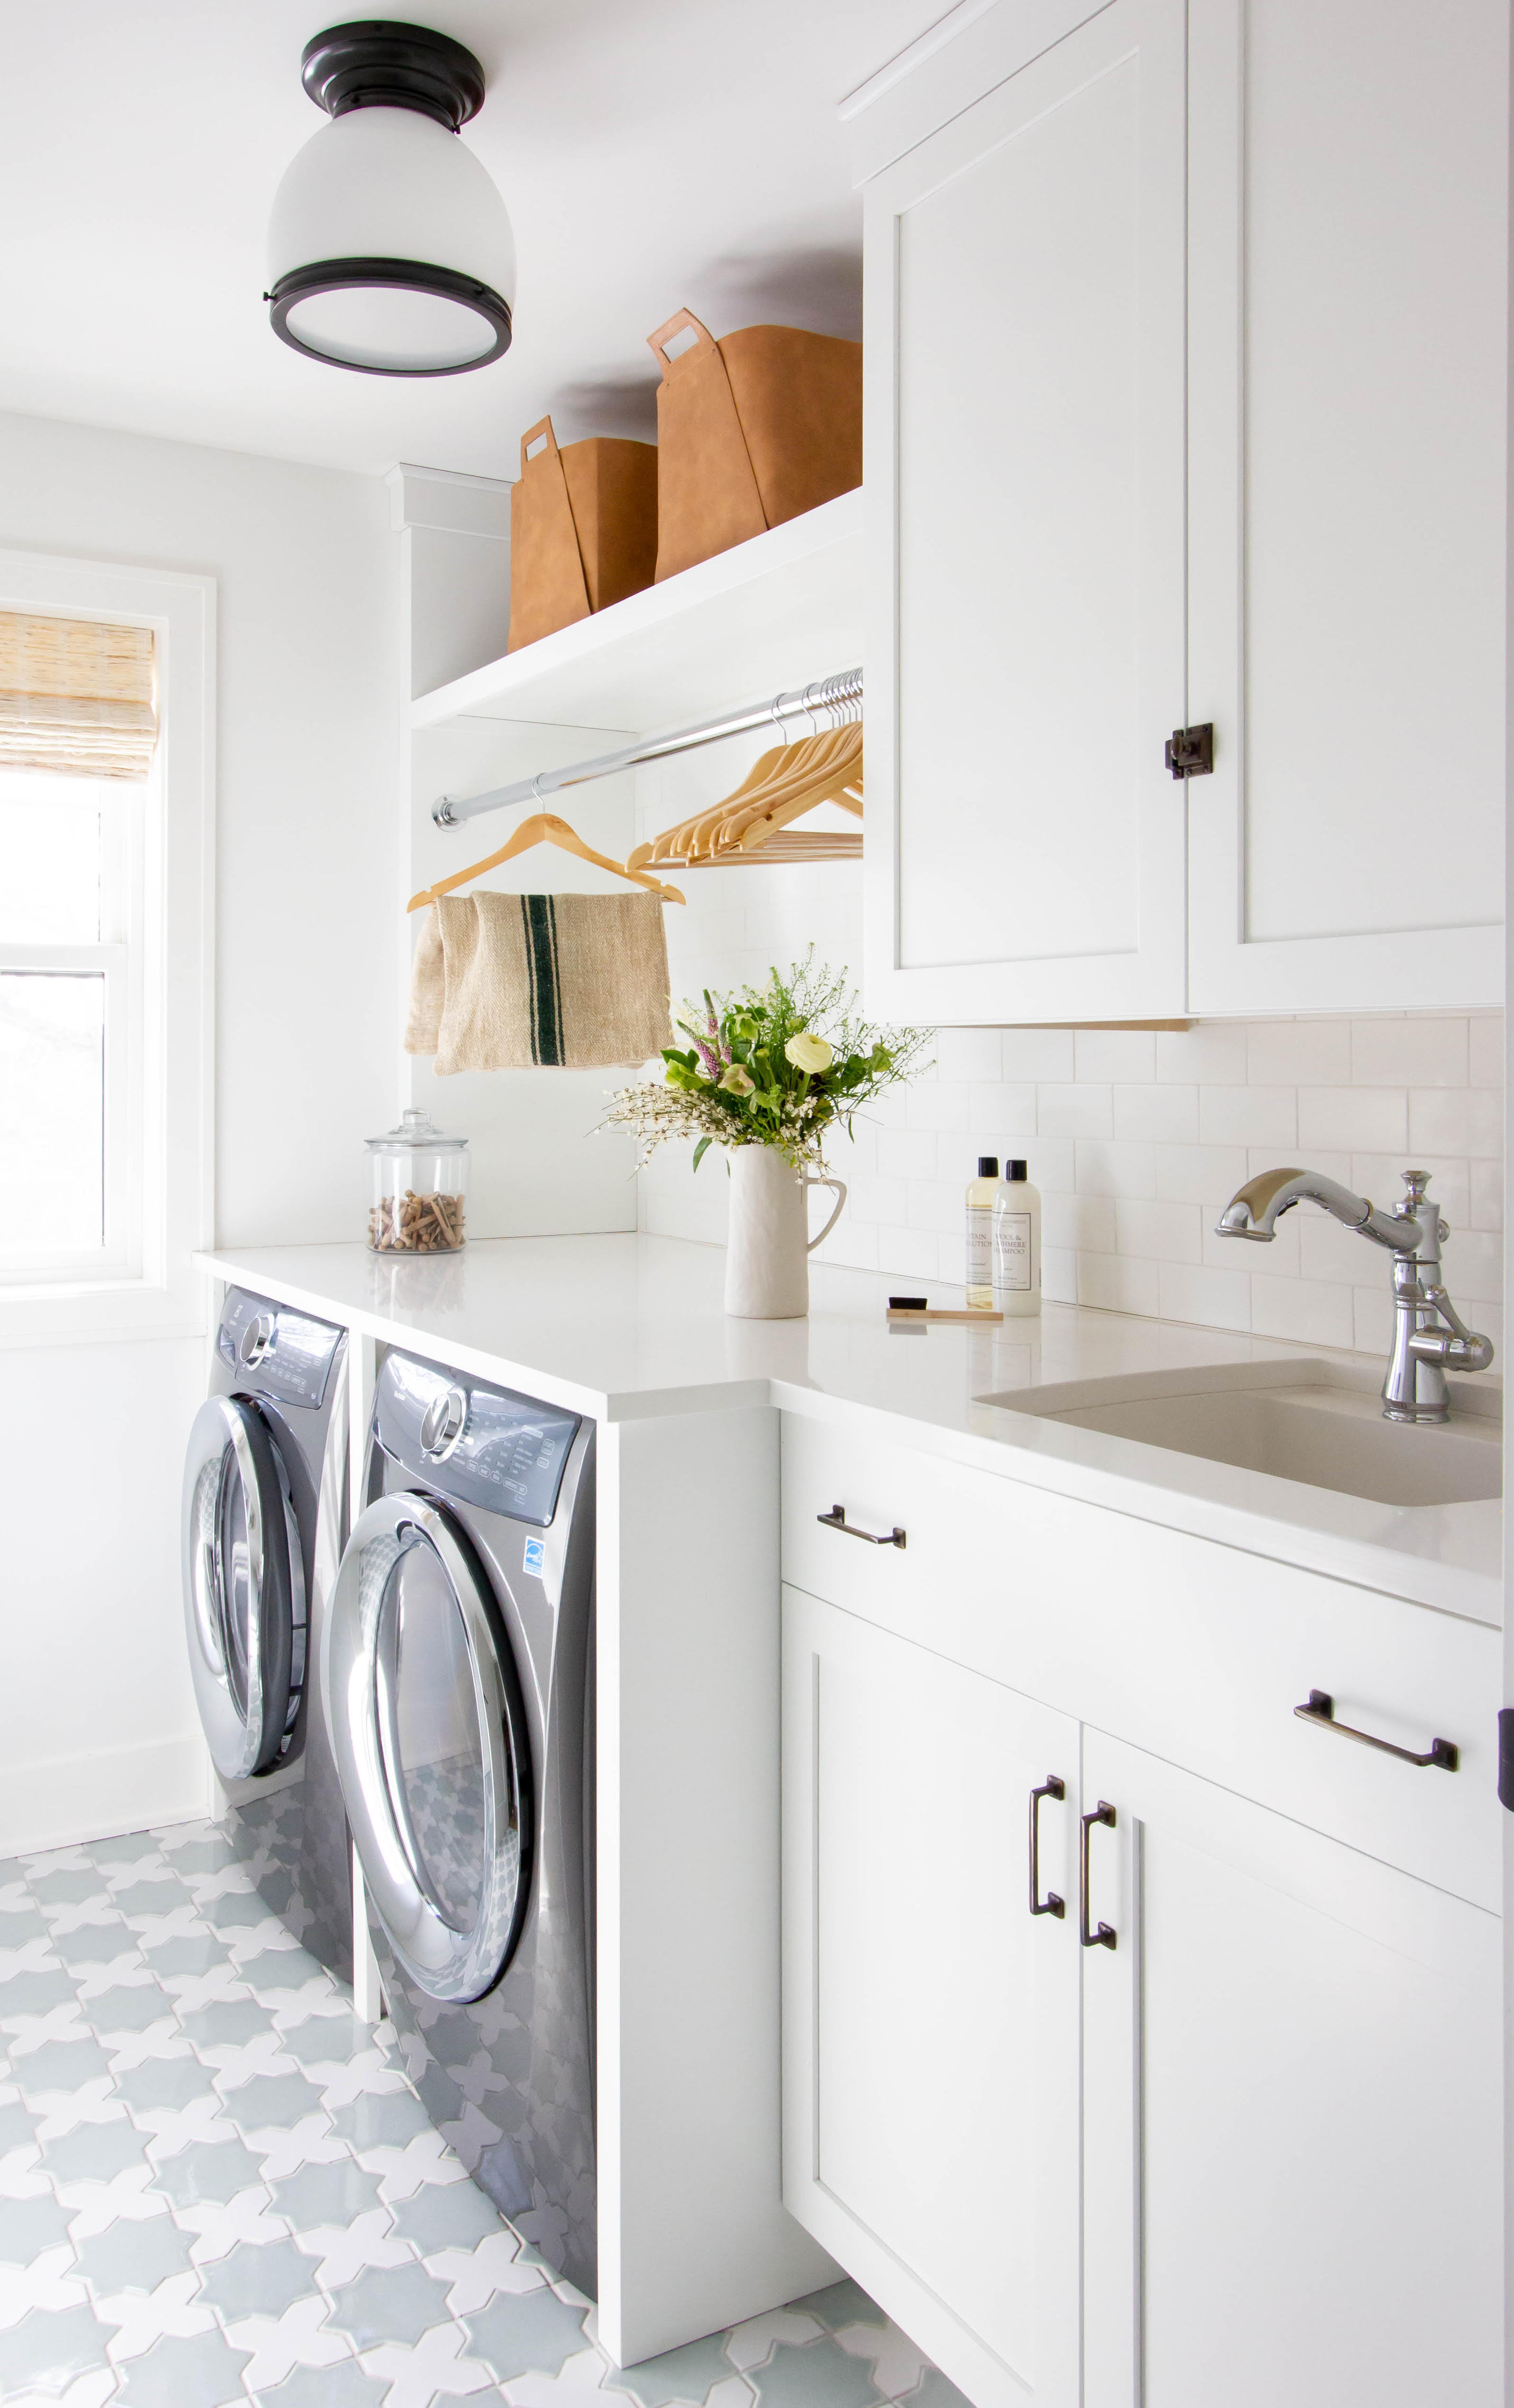 2017_Q2_img_residential_hi_res_rights_with_credit_tiffany_weiss_designs_laundry_room_floor_residential_mini_star_and_cross_salton_sea_daisy_FC192884_3.jpg?mtime=20190111112651#asset:431729